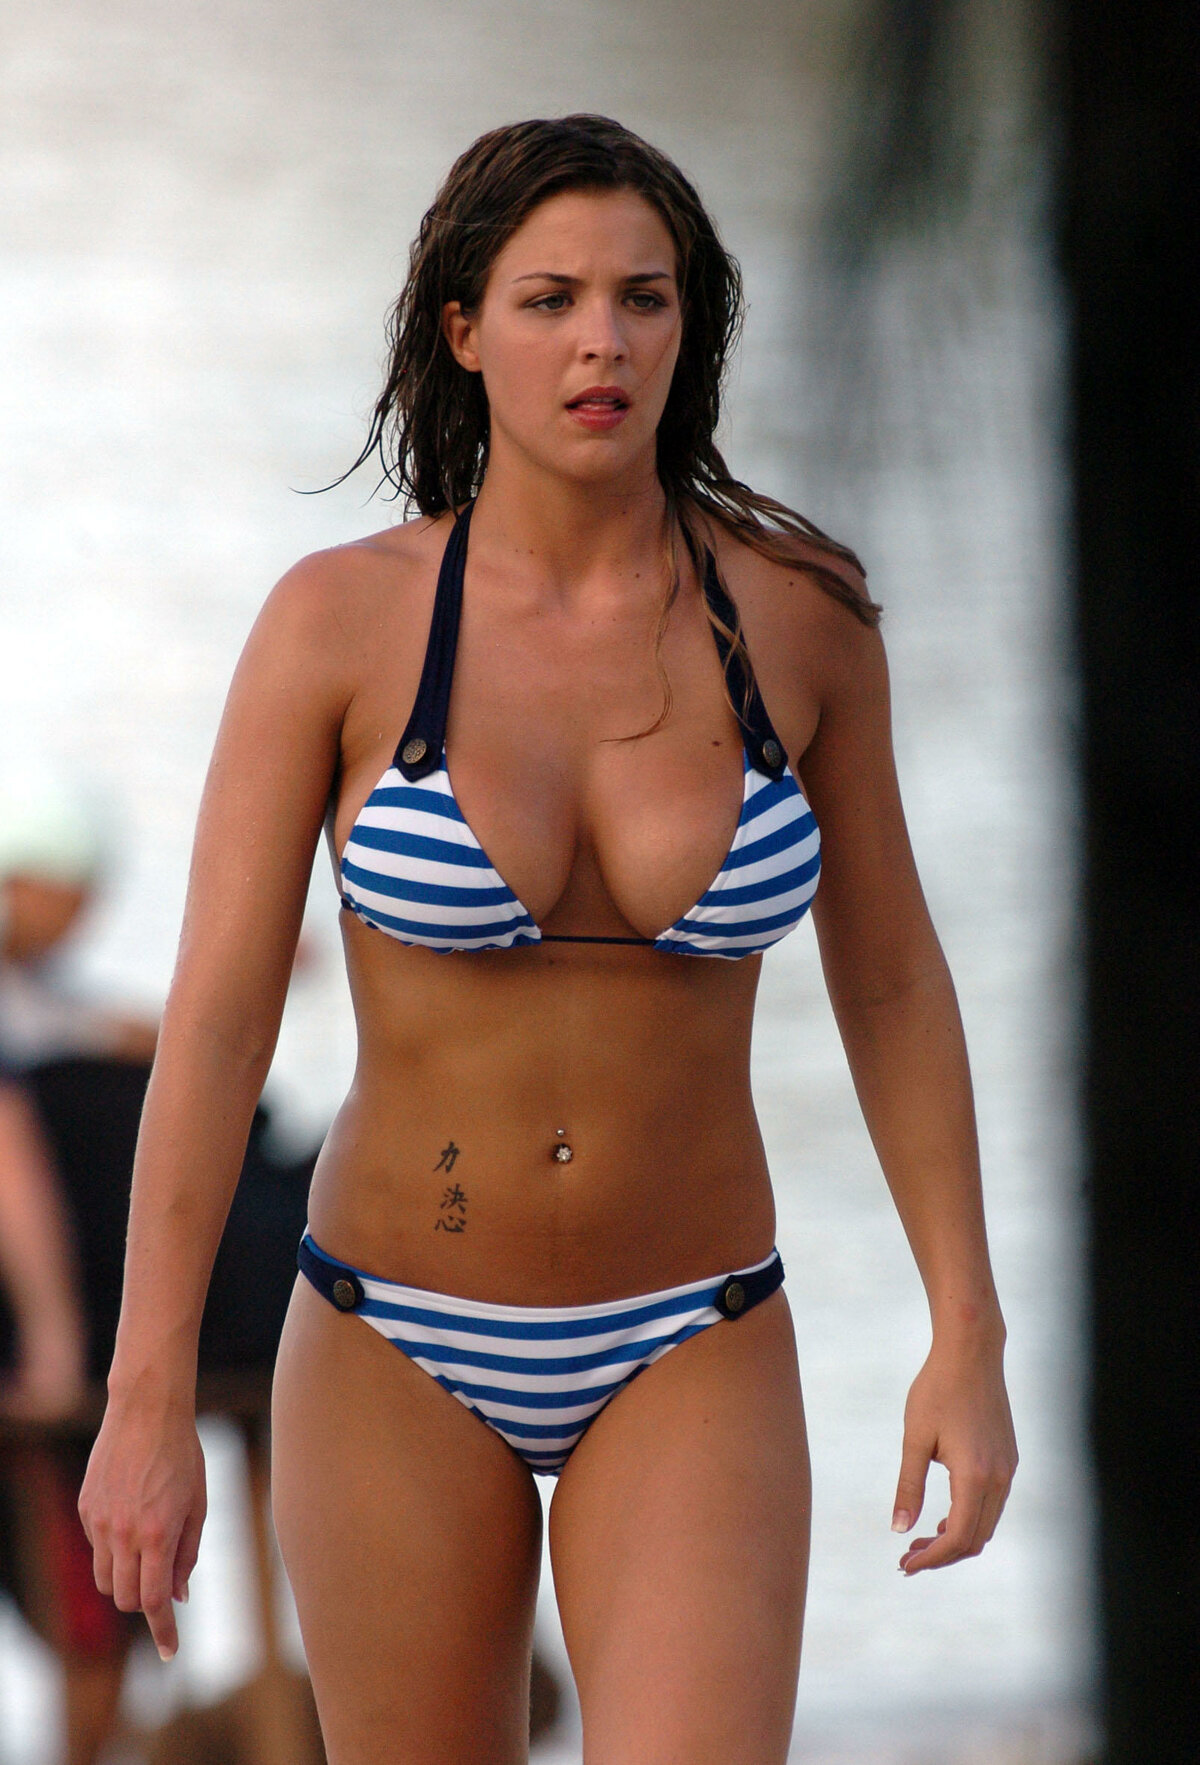 celebrity-bikini-gallery-midget-bisexual